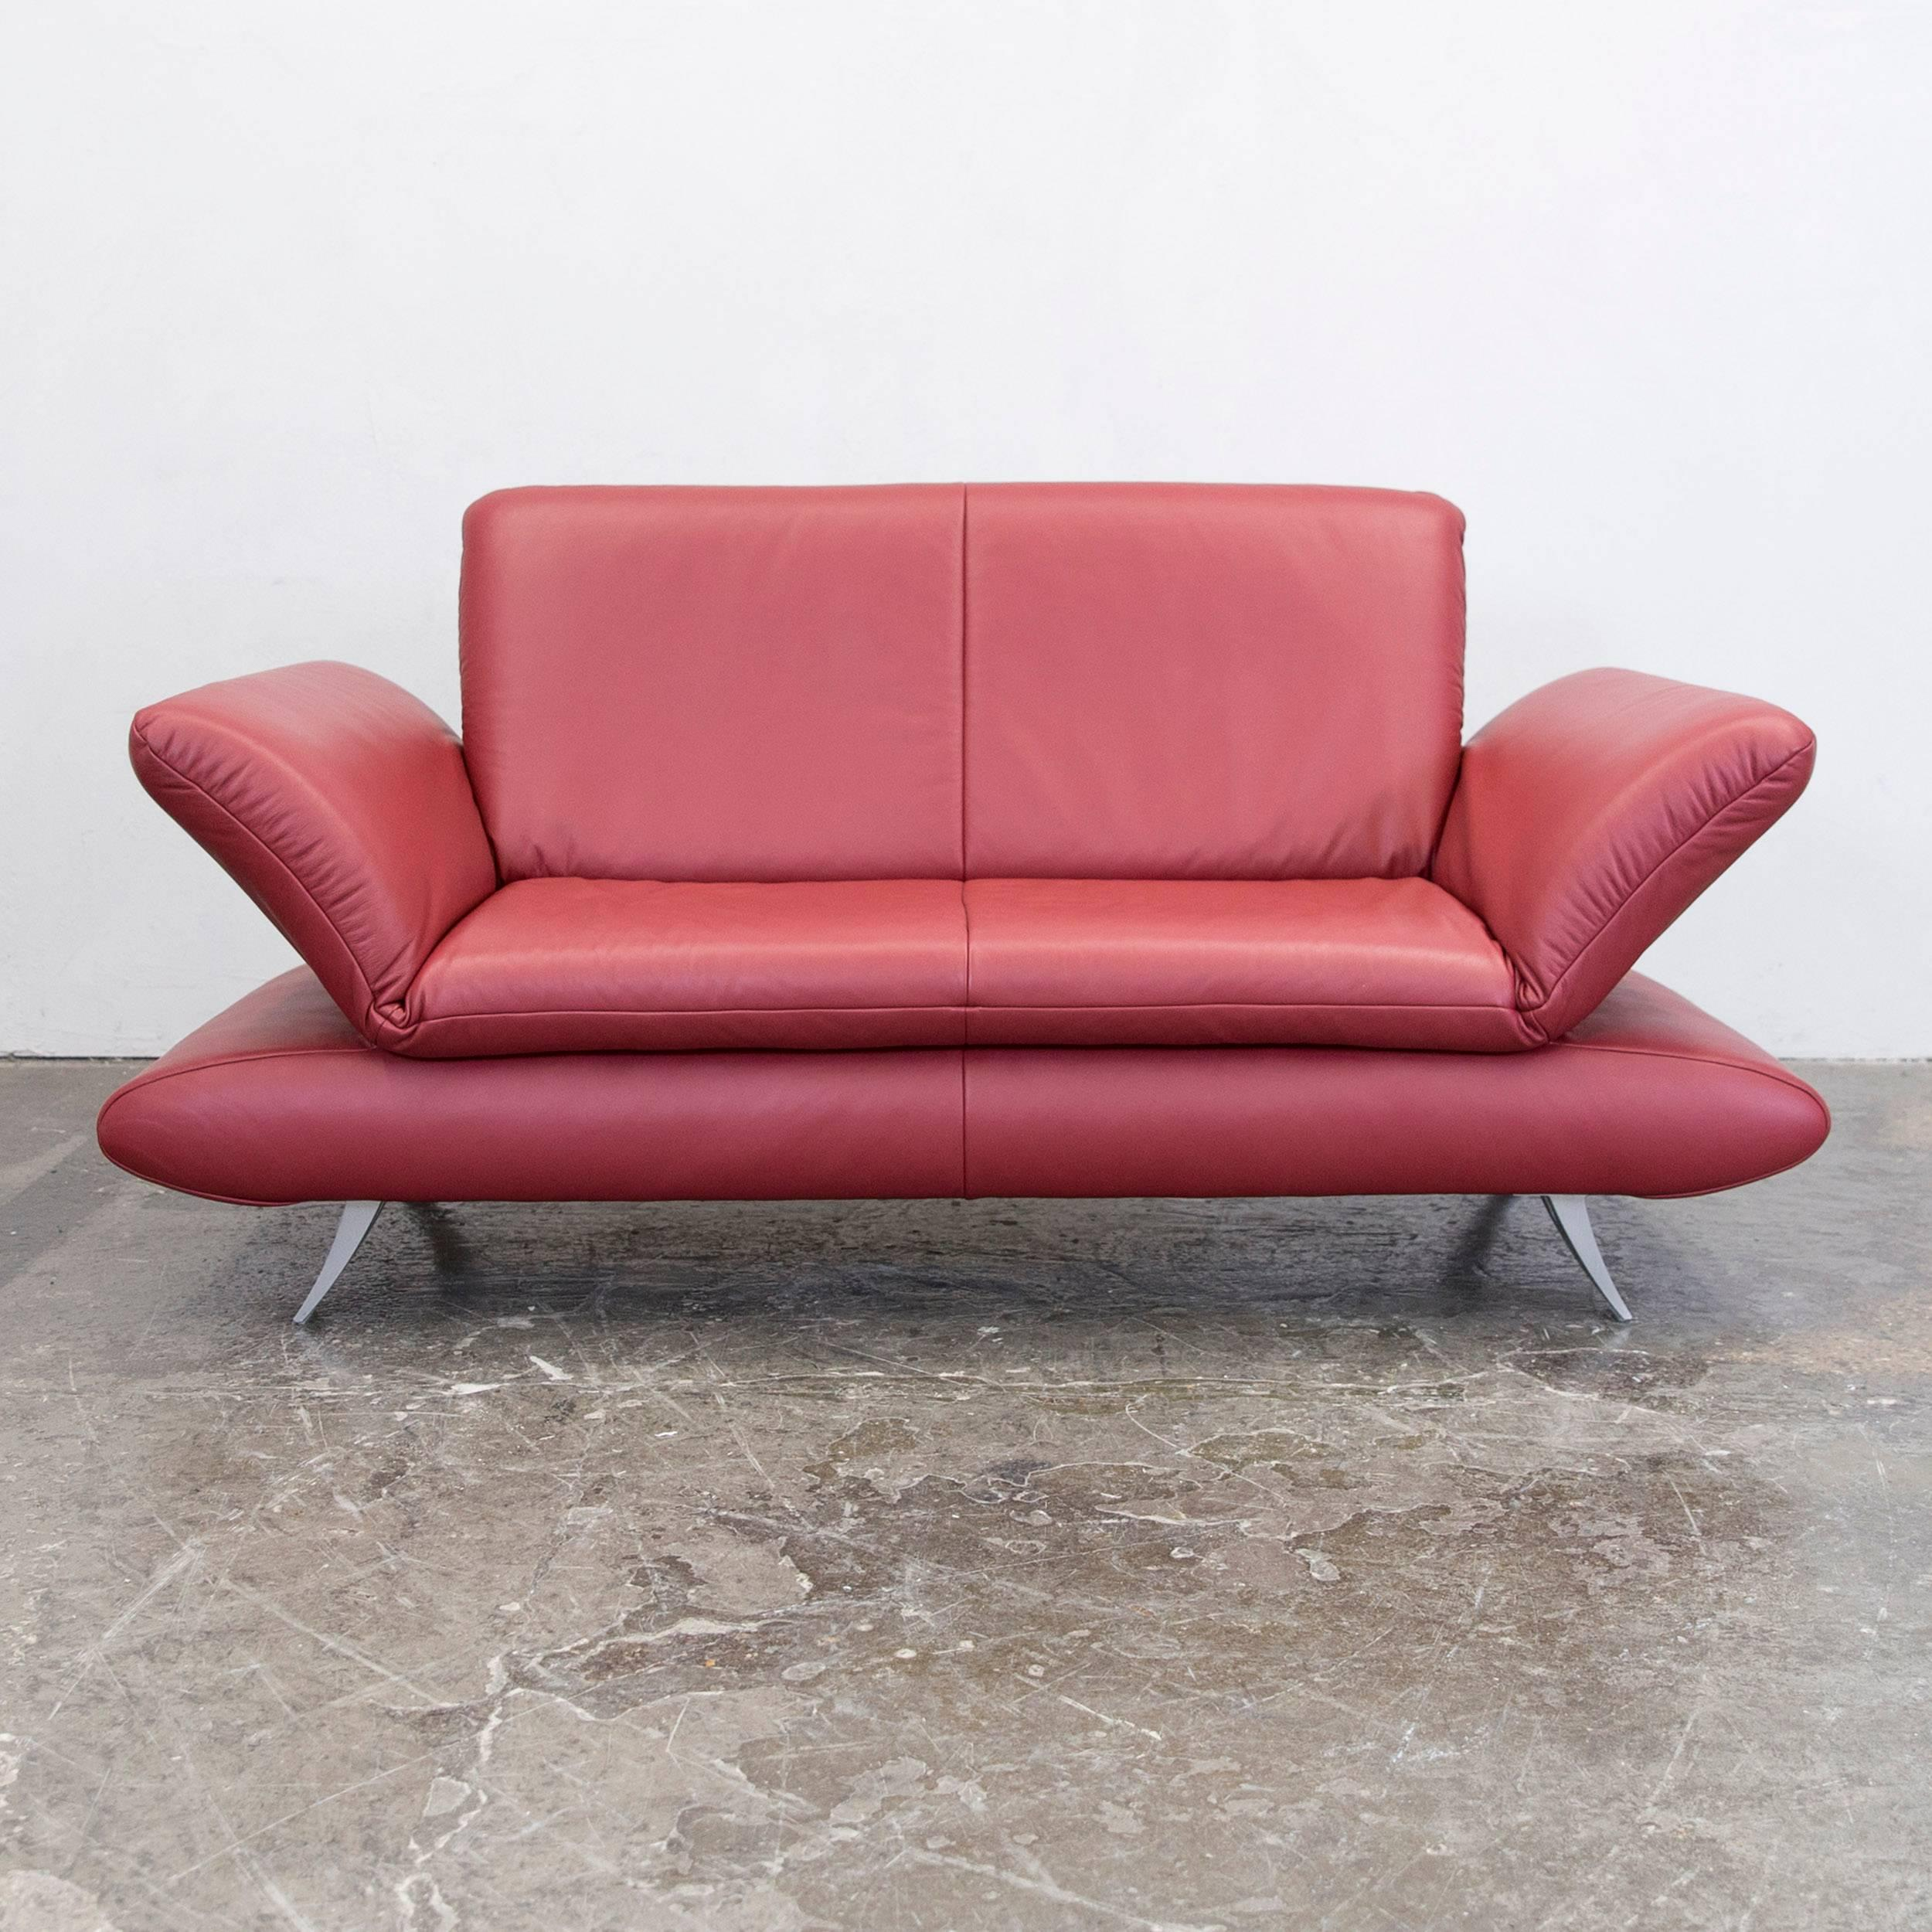 Koinor Sessel Silencio Koinor Rossini Designer Sofa Red Full Leather Two Seat Function Modern